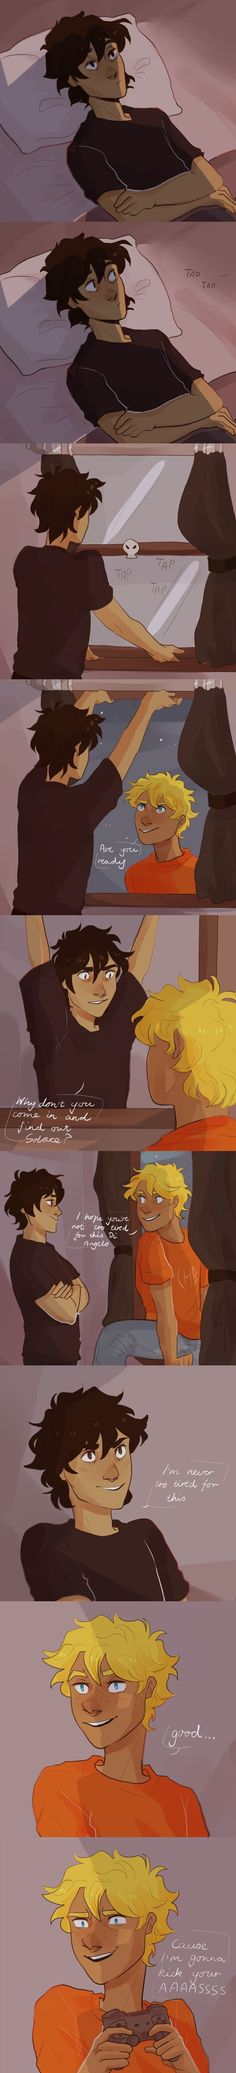 Lol, raise your hand if you thought it was going to be gay! (I don't ship Solangelo, if it is in one of the books, you better be prepared to give me chapter and page.)